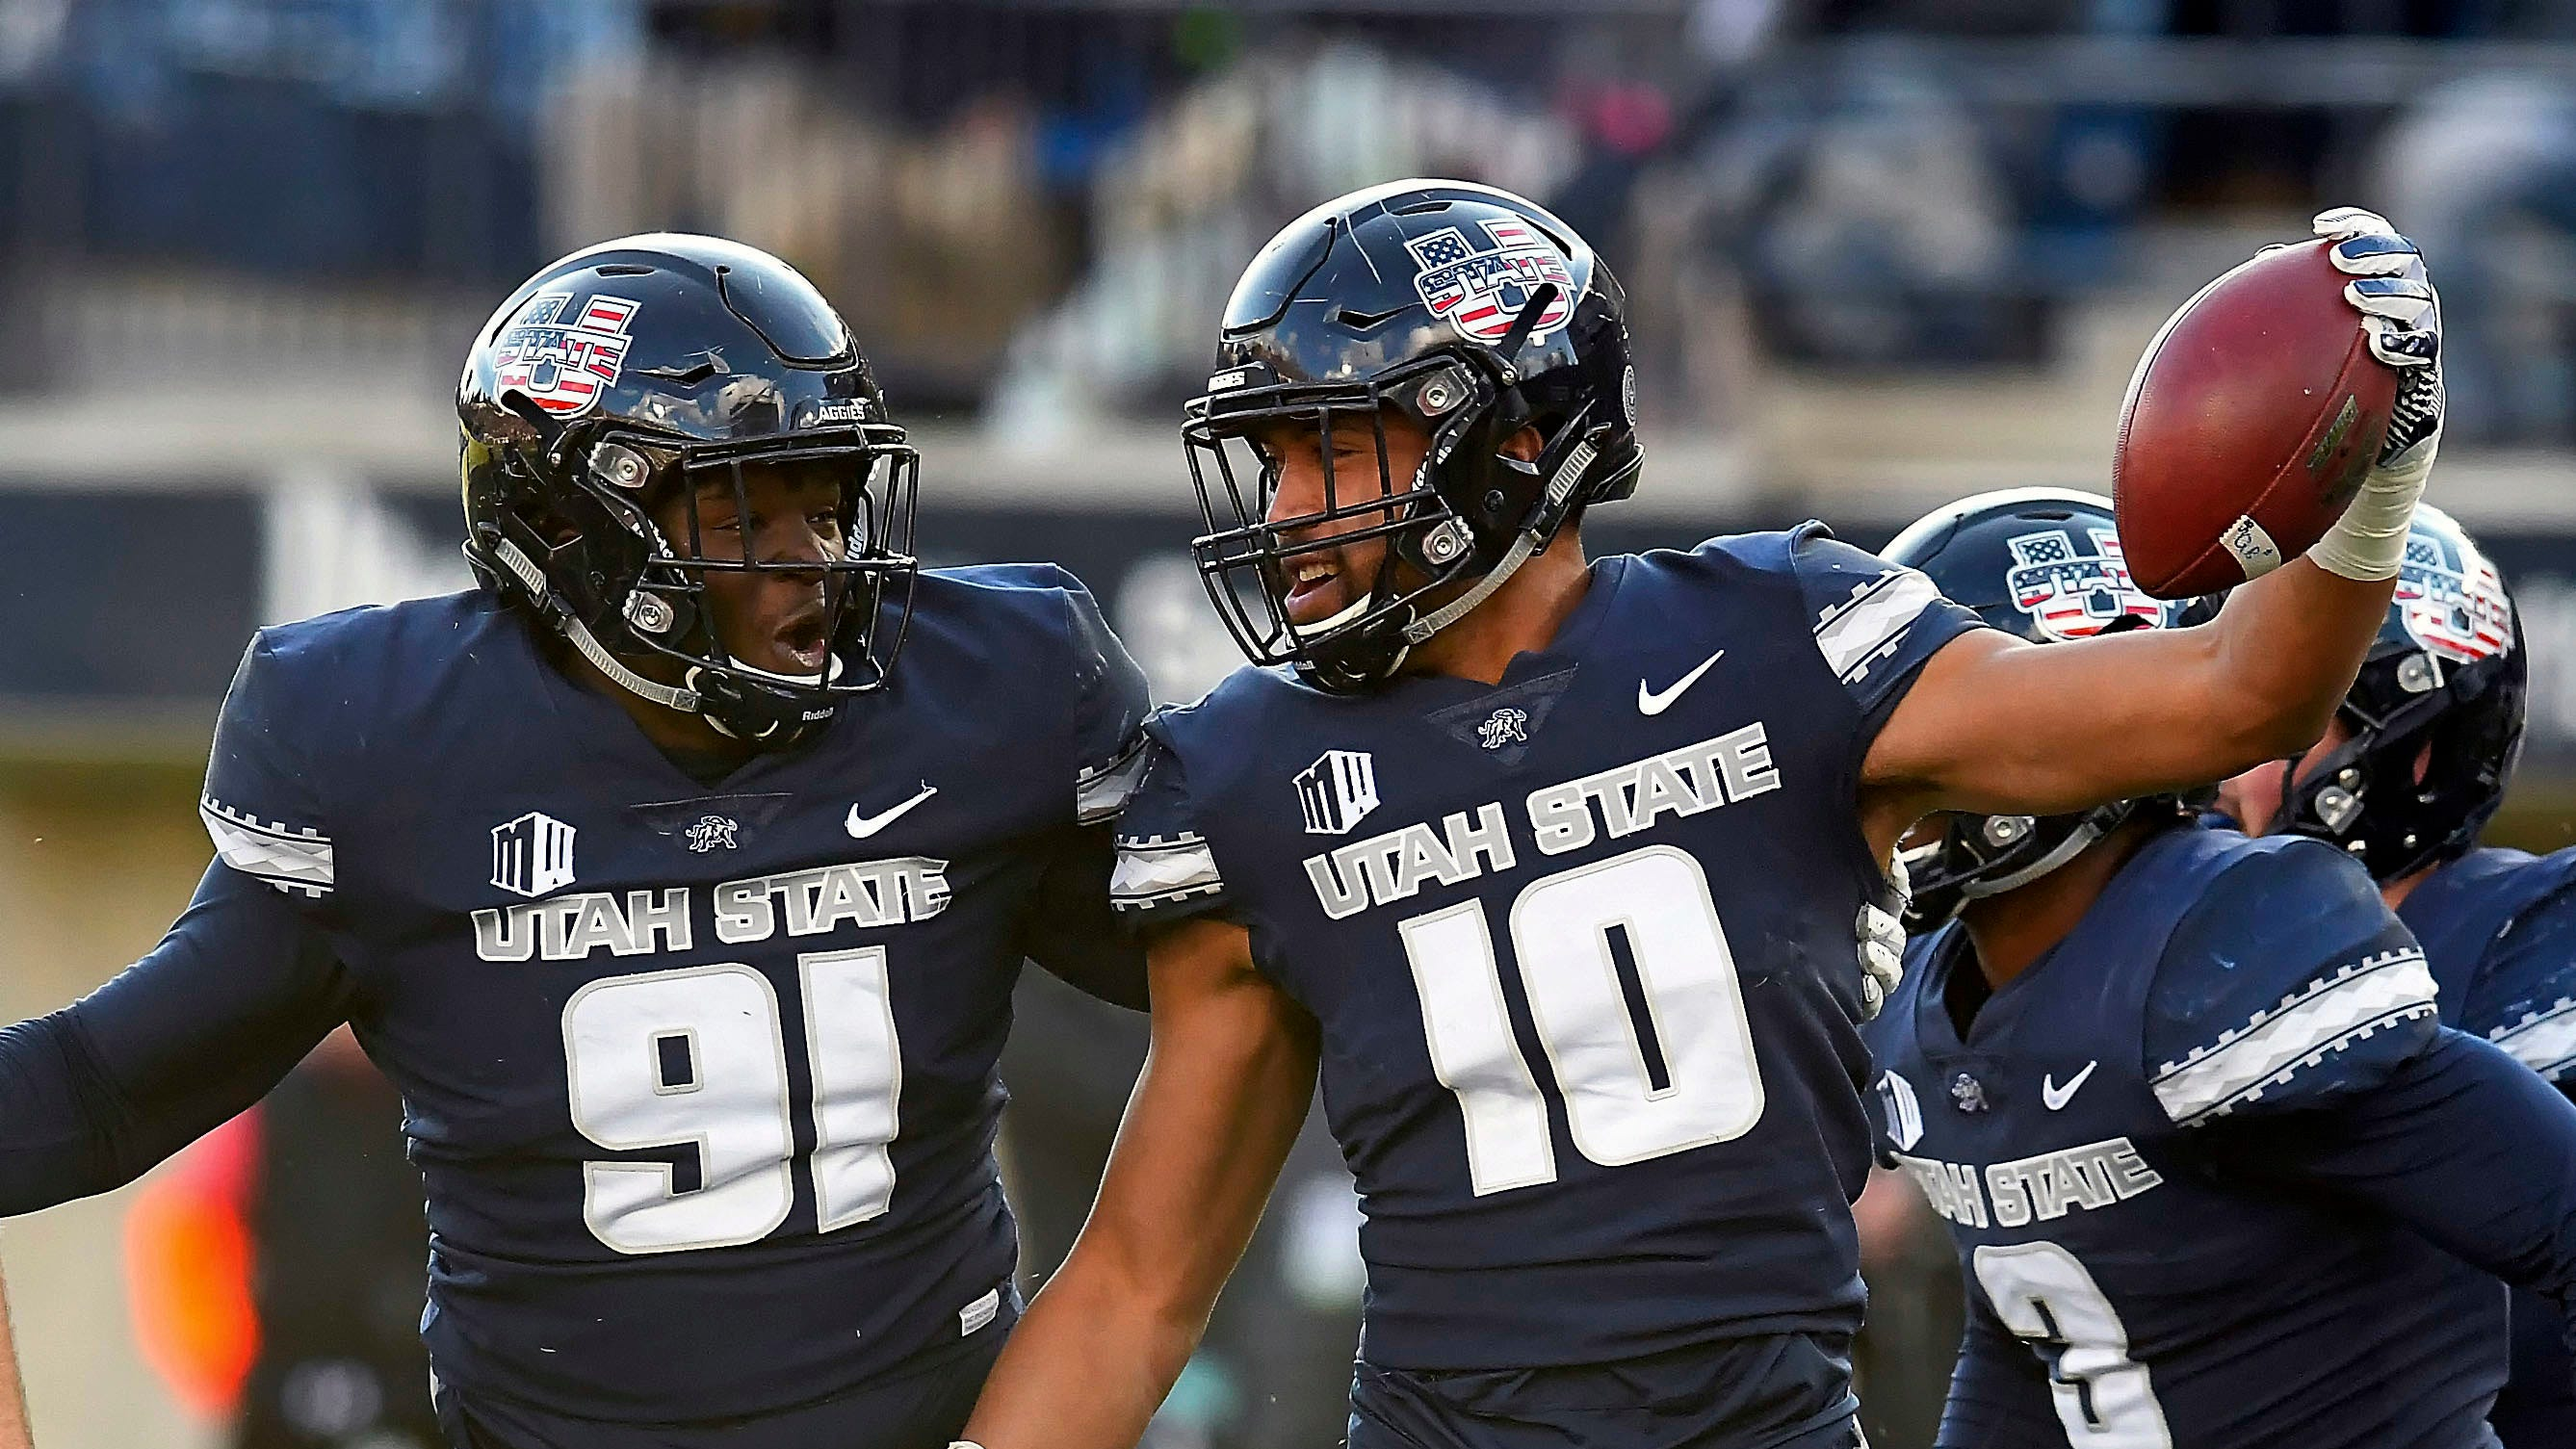 Utah State linebacker Tipa Galeai (10) celebrates with defensive end Devon Anderson (91) after he intercepted a San Jose State pass during an NCAA football game Saturday, Nov. 10, 2018, in Logan, Utah. (Eli Lucero/The Herald Journal via AP)